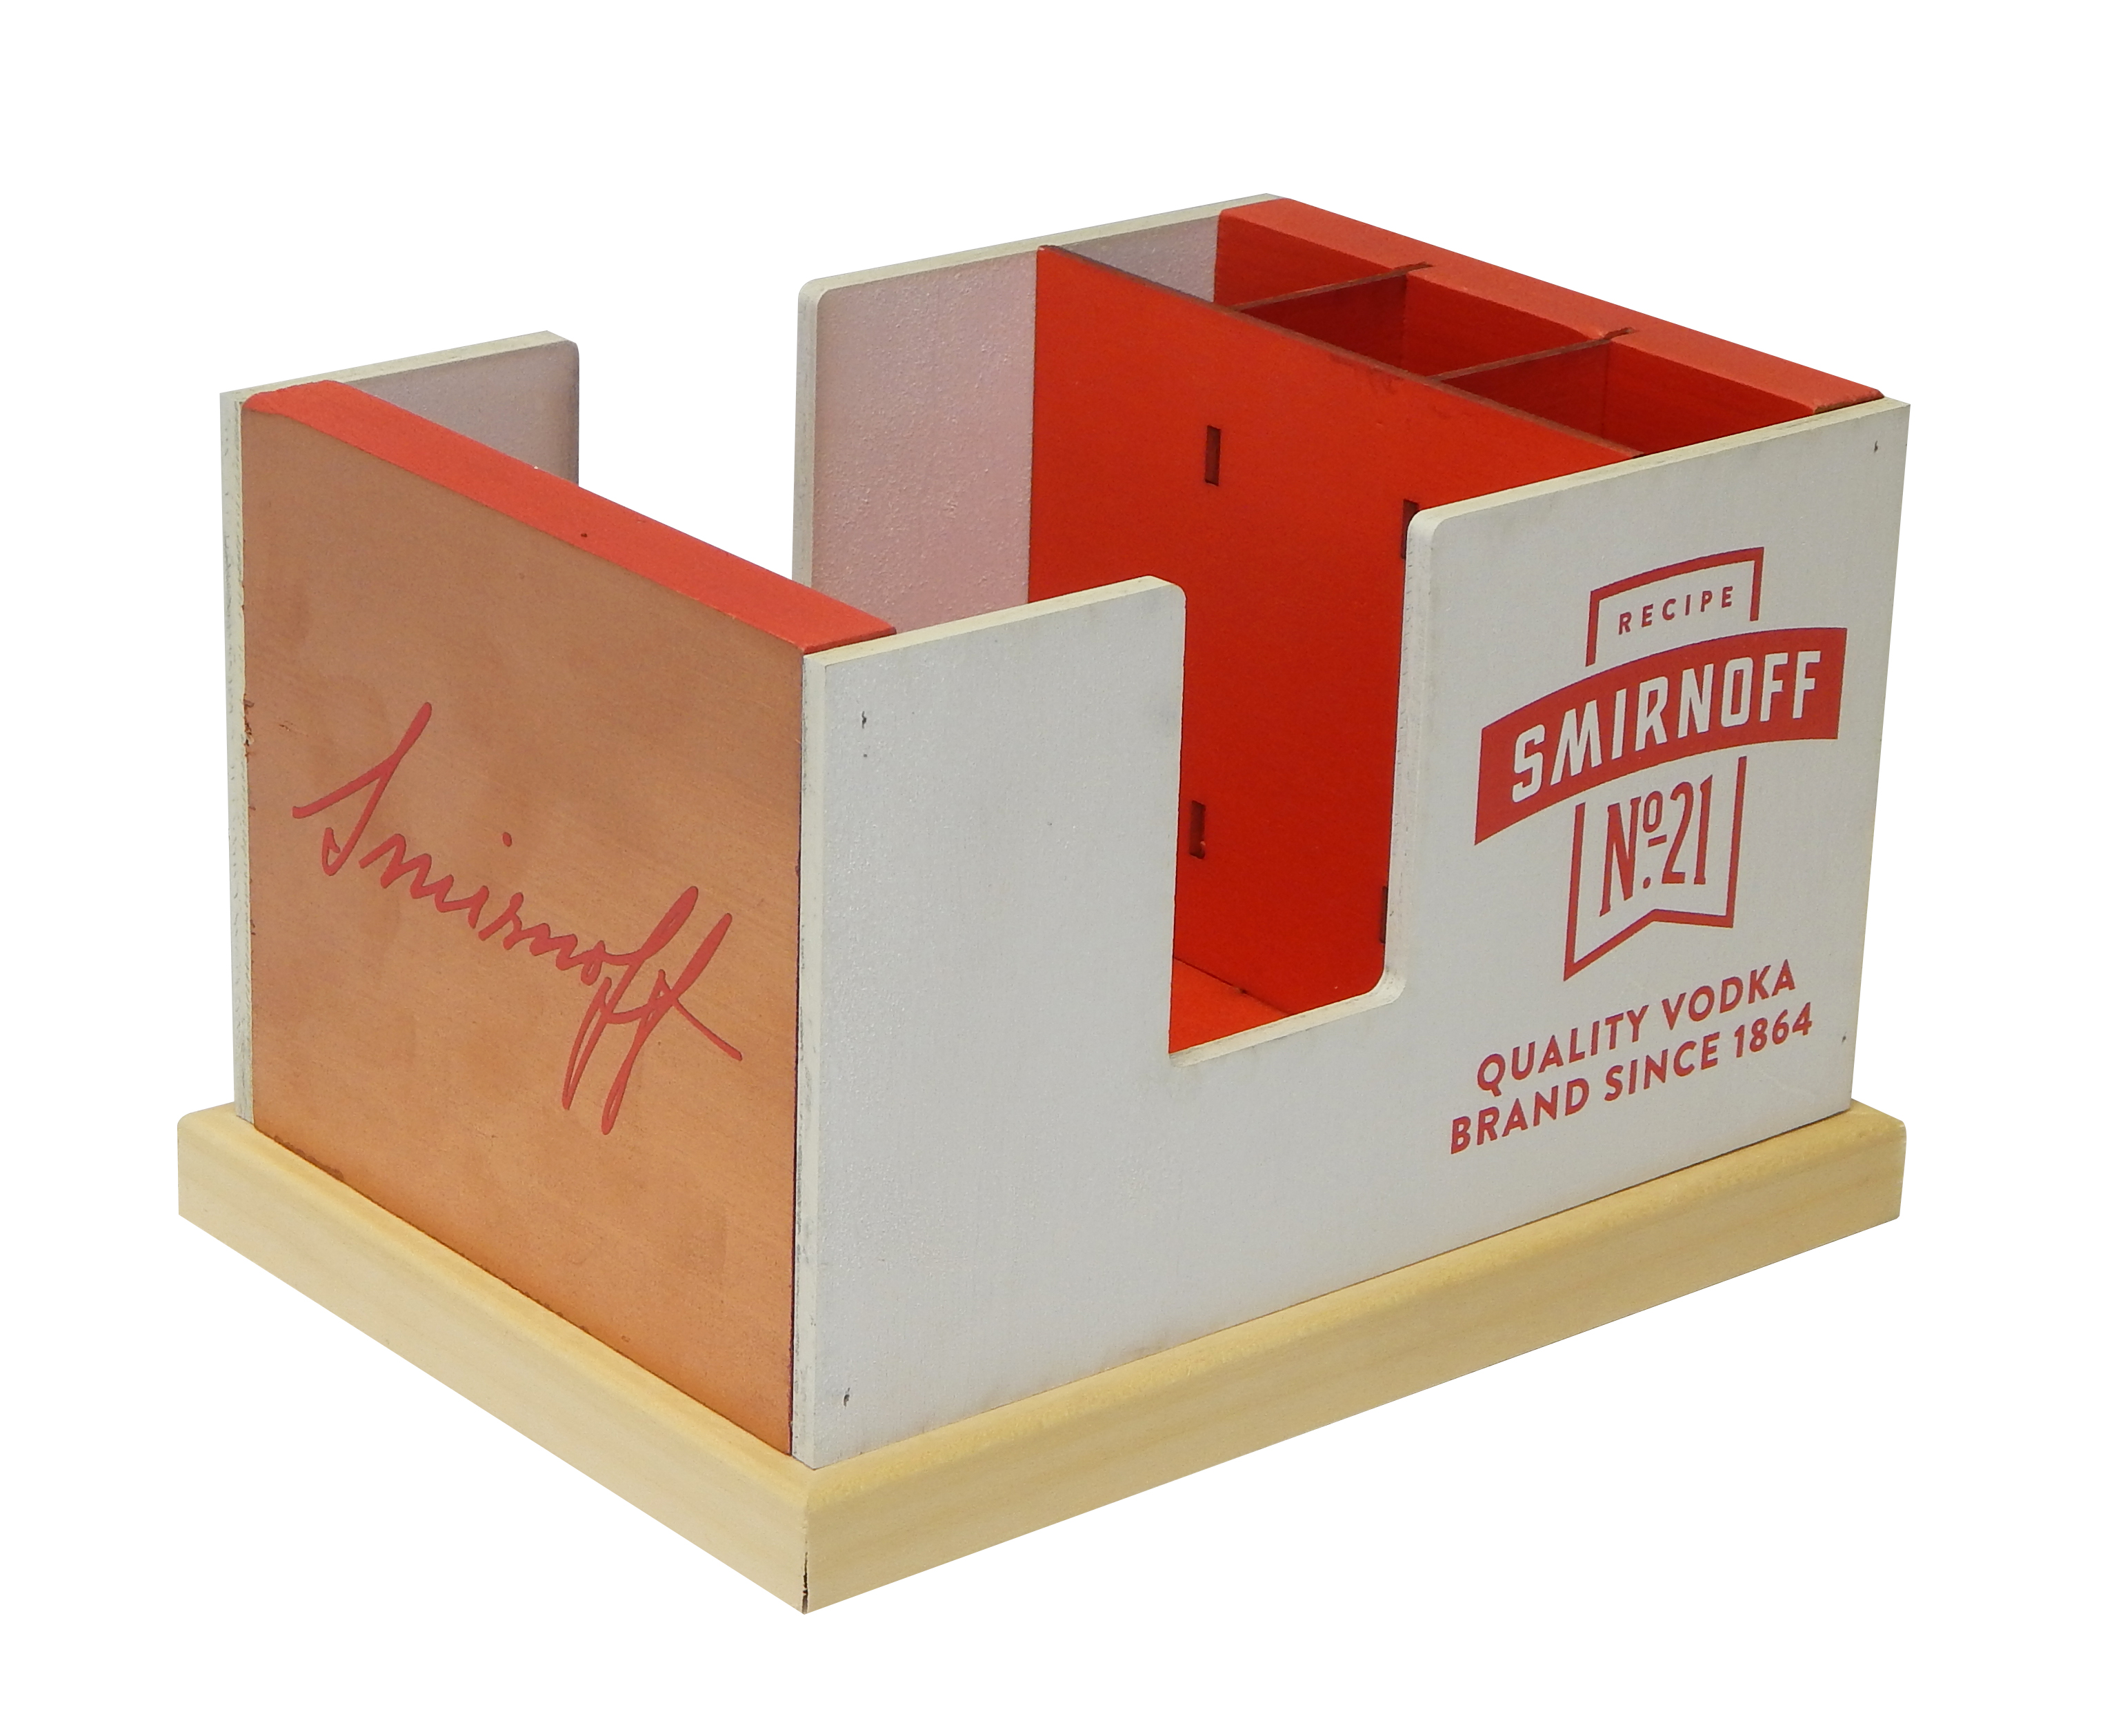 Sminoff Napkin Caddy